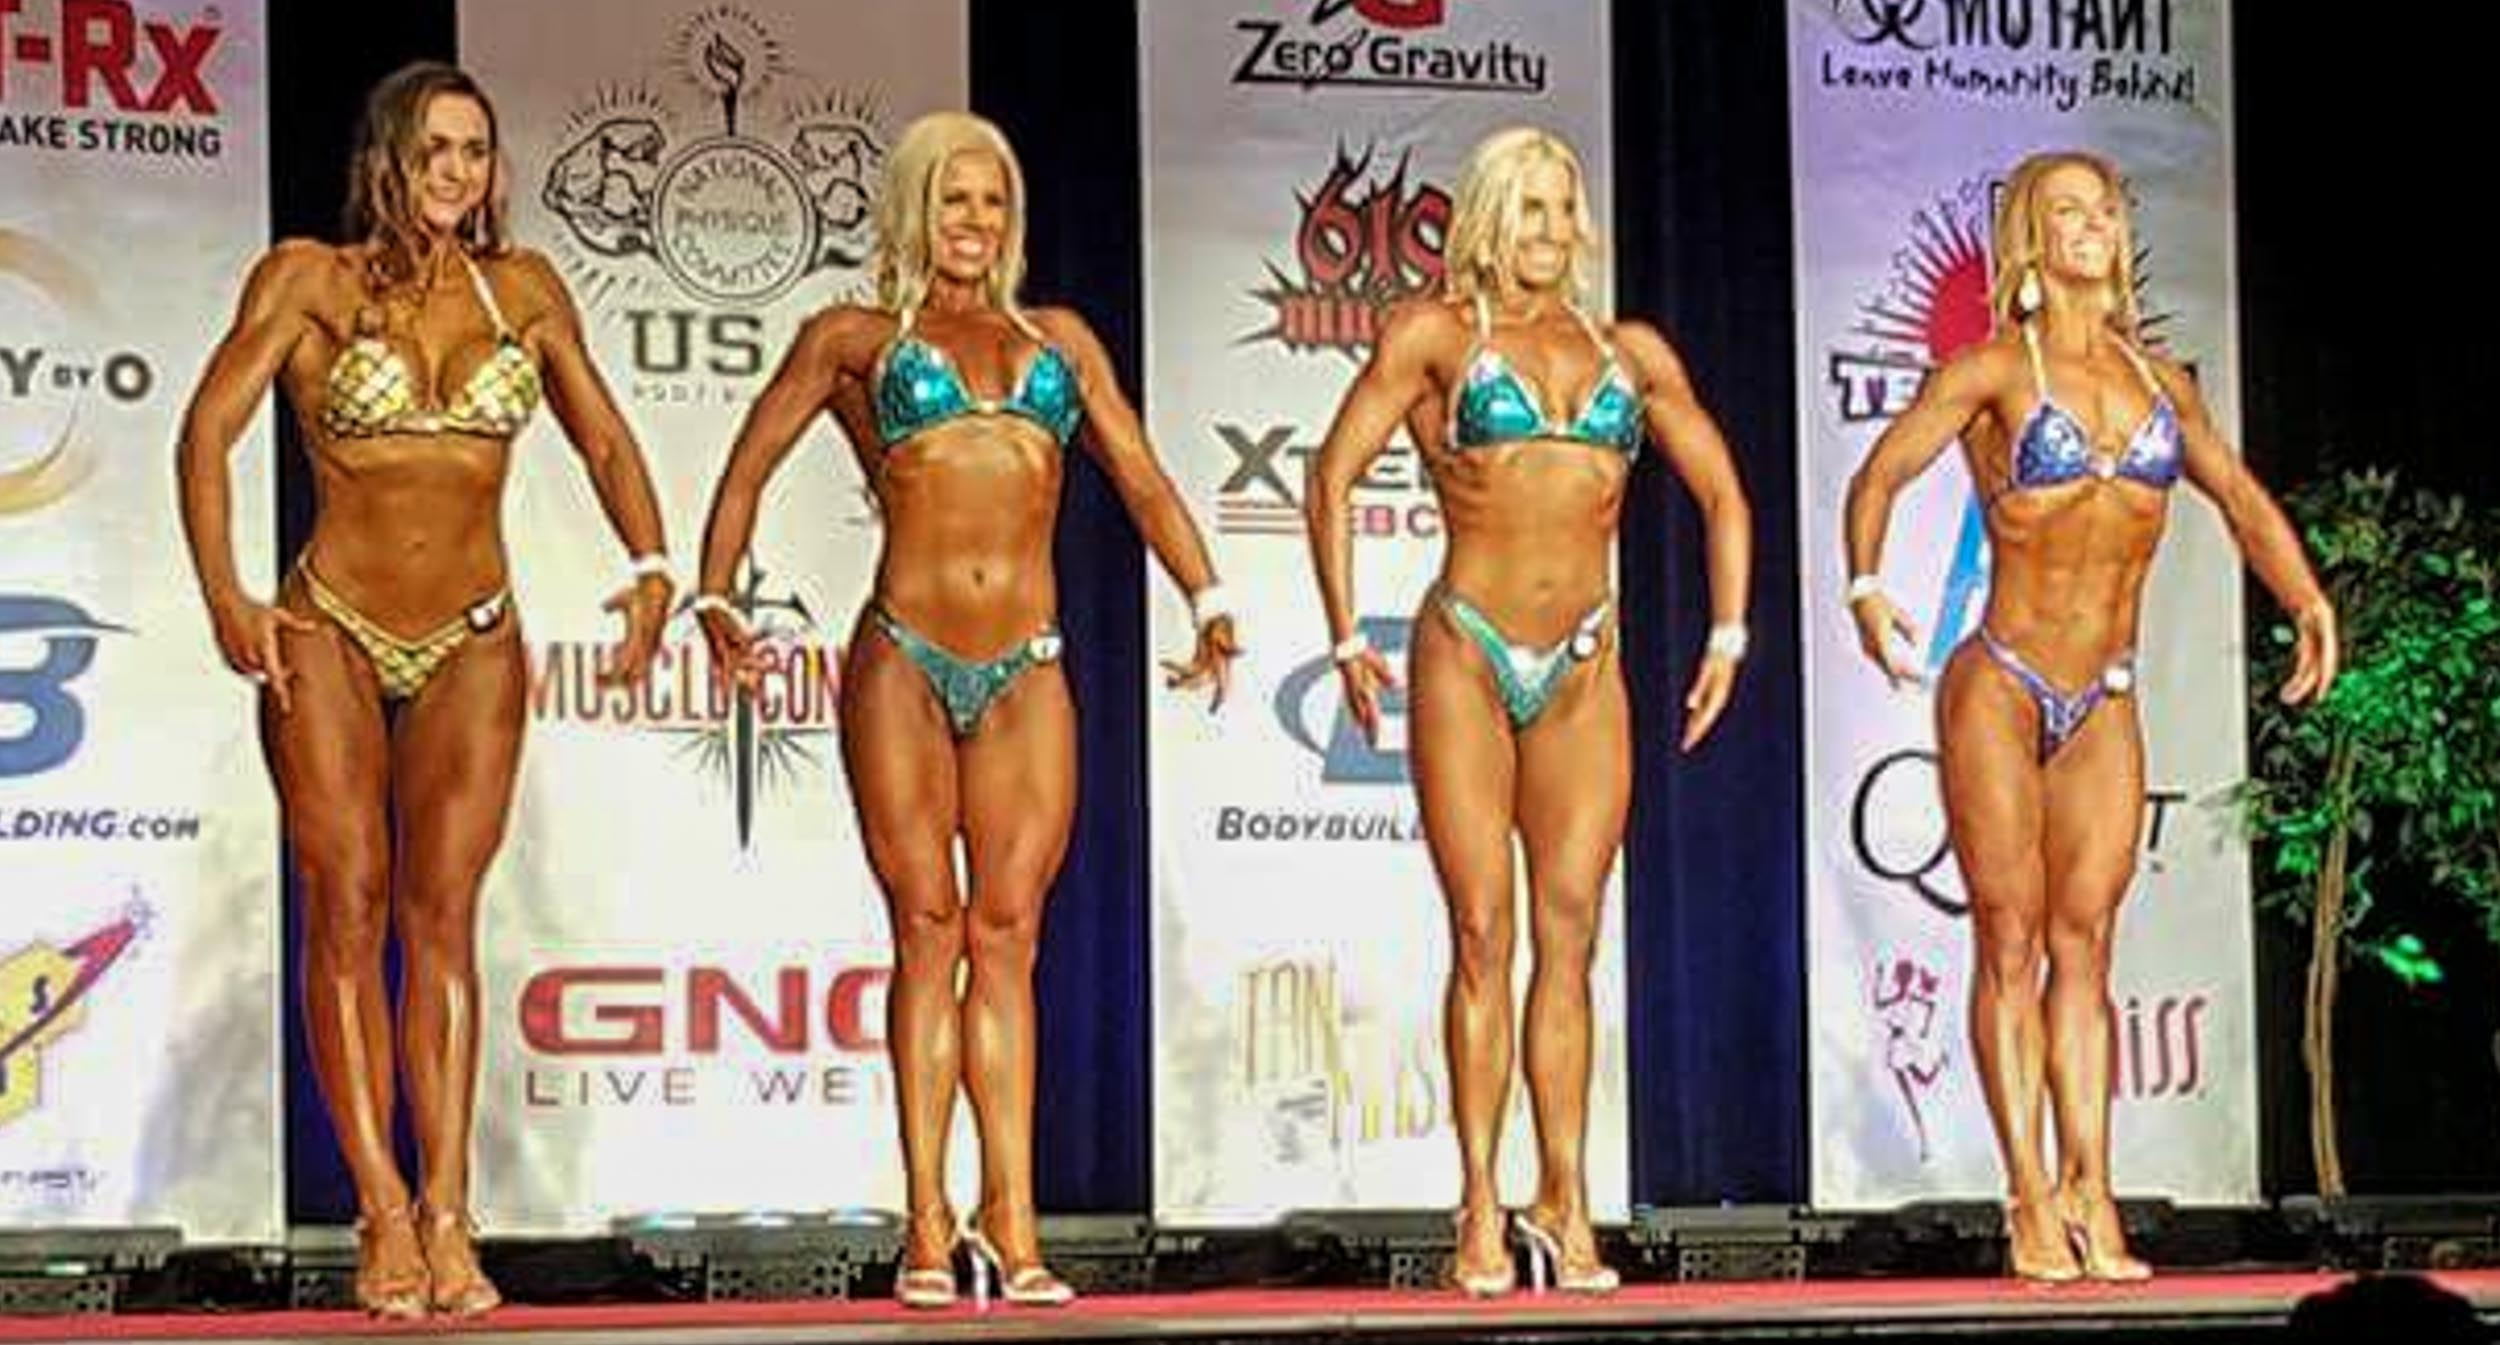 db65d0f503ec7 Spurgeon spent the weeks after her first show eating too much